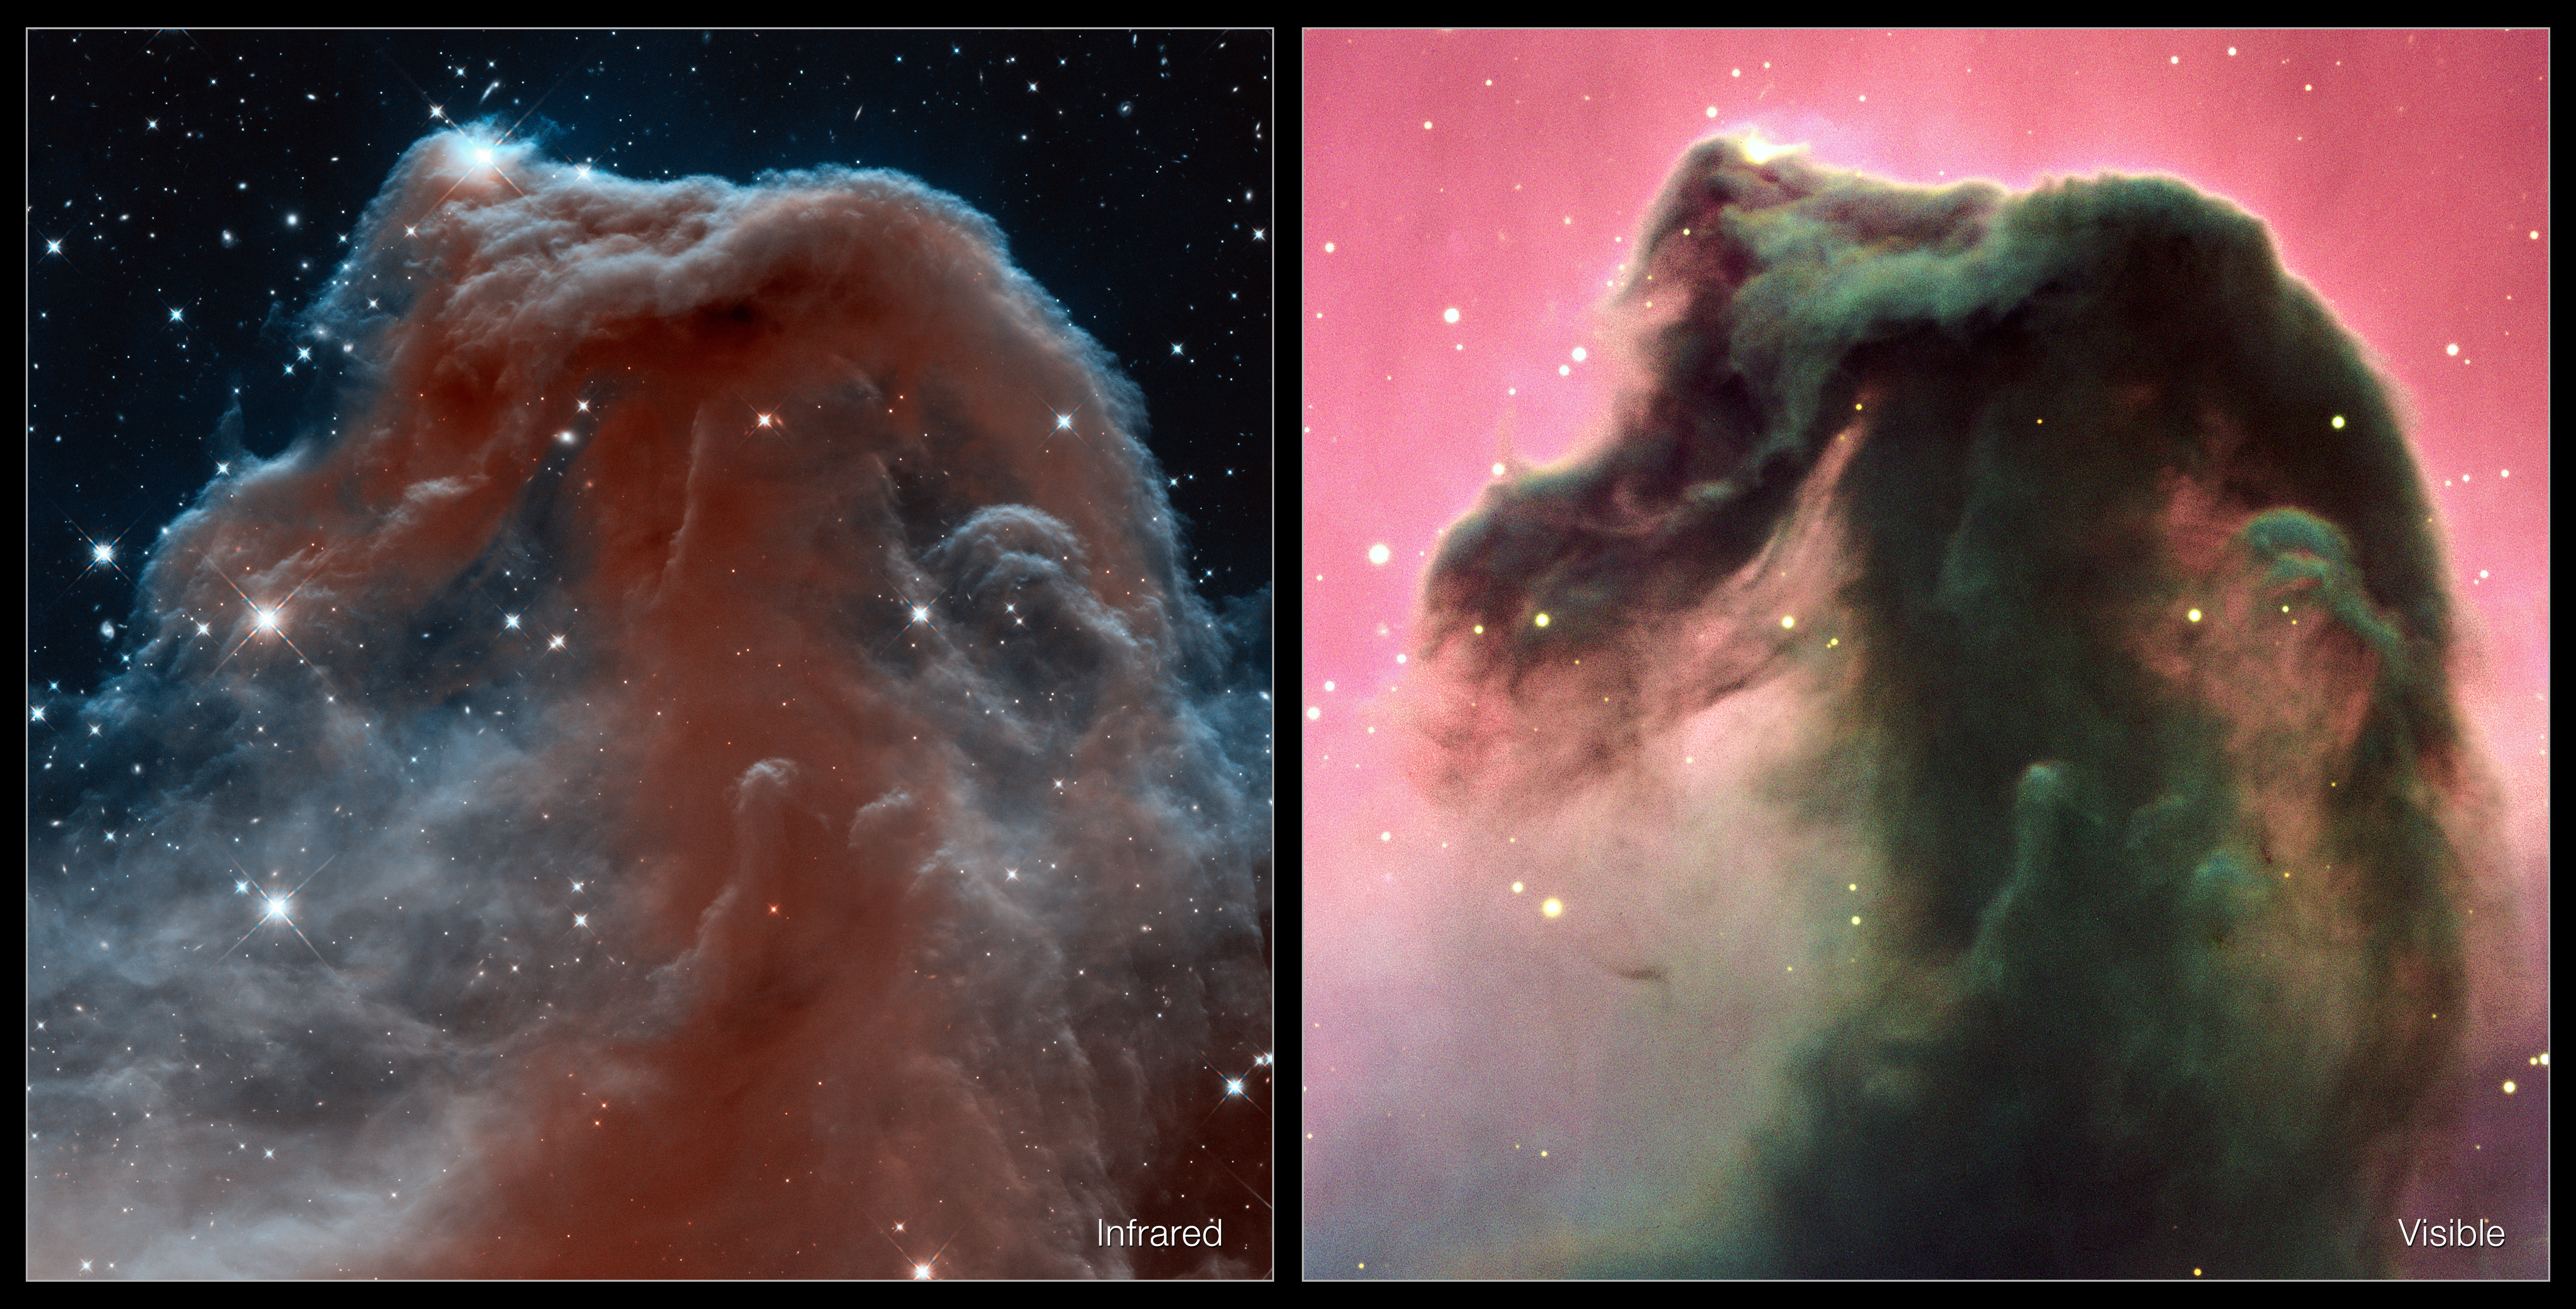 Infrared Visible Light Comparison View Of The Helix Nebula: Visible And Infrared Views Of The Horsehead Nebula